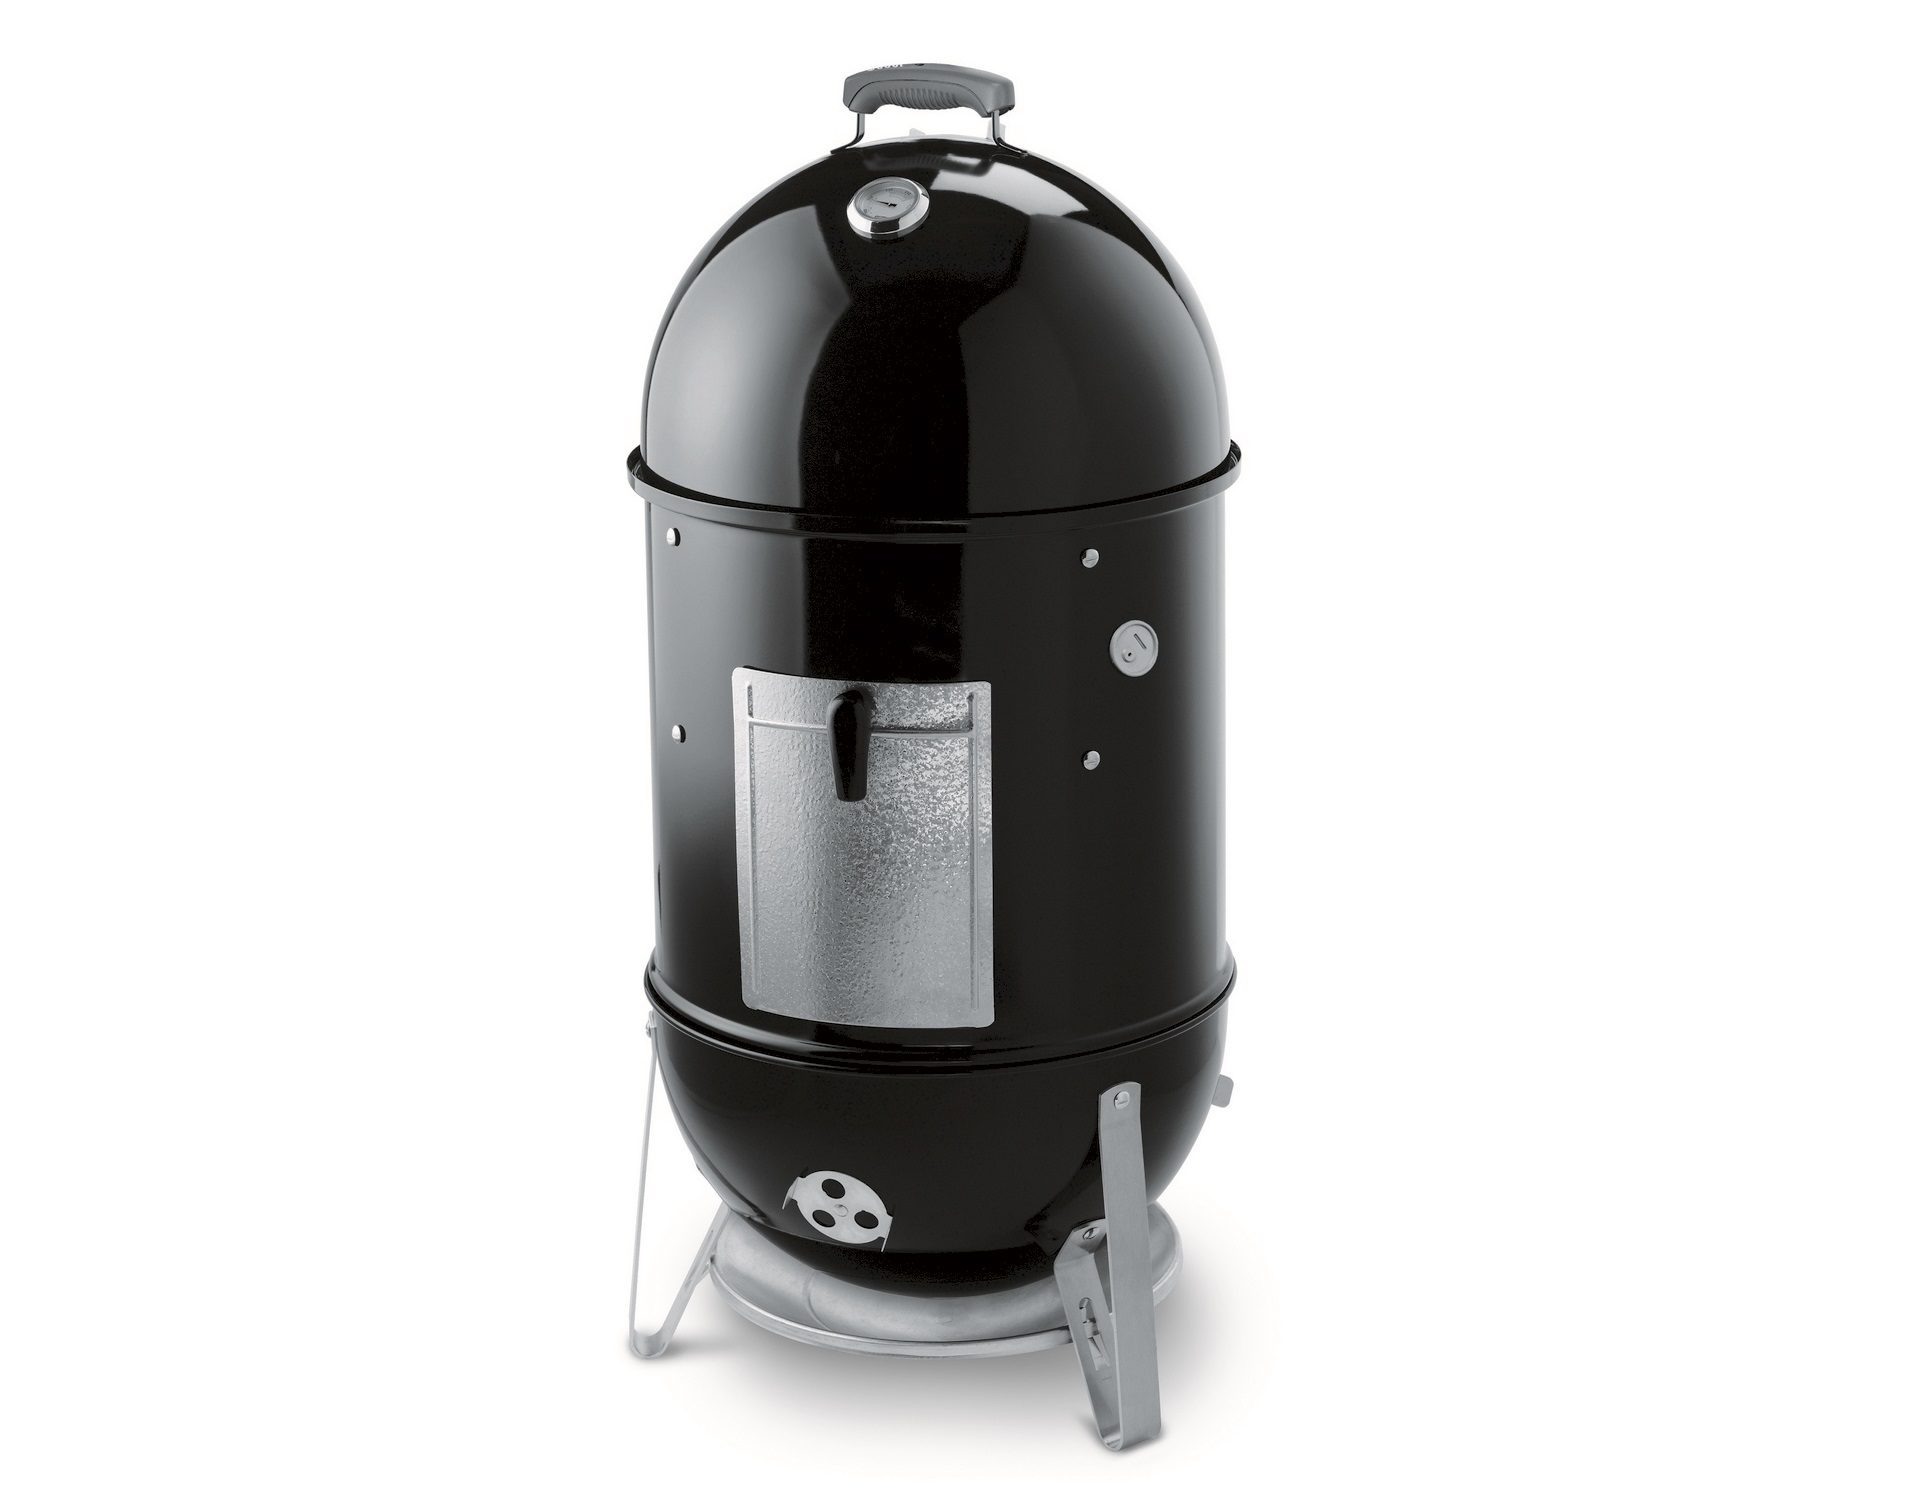 weber-47cm-smokey-mountain-cooker-721004